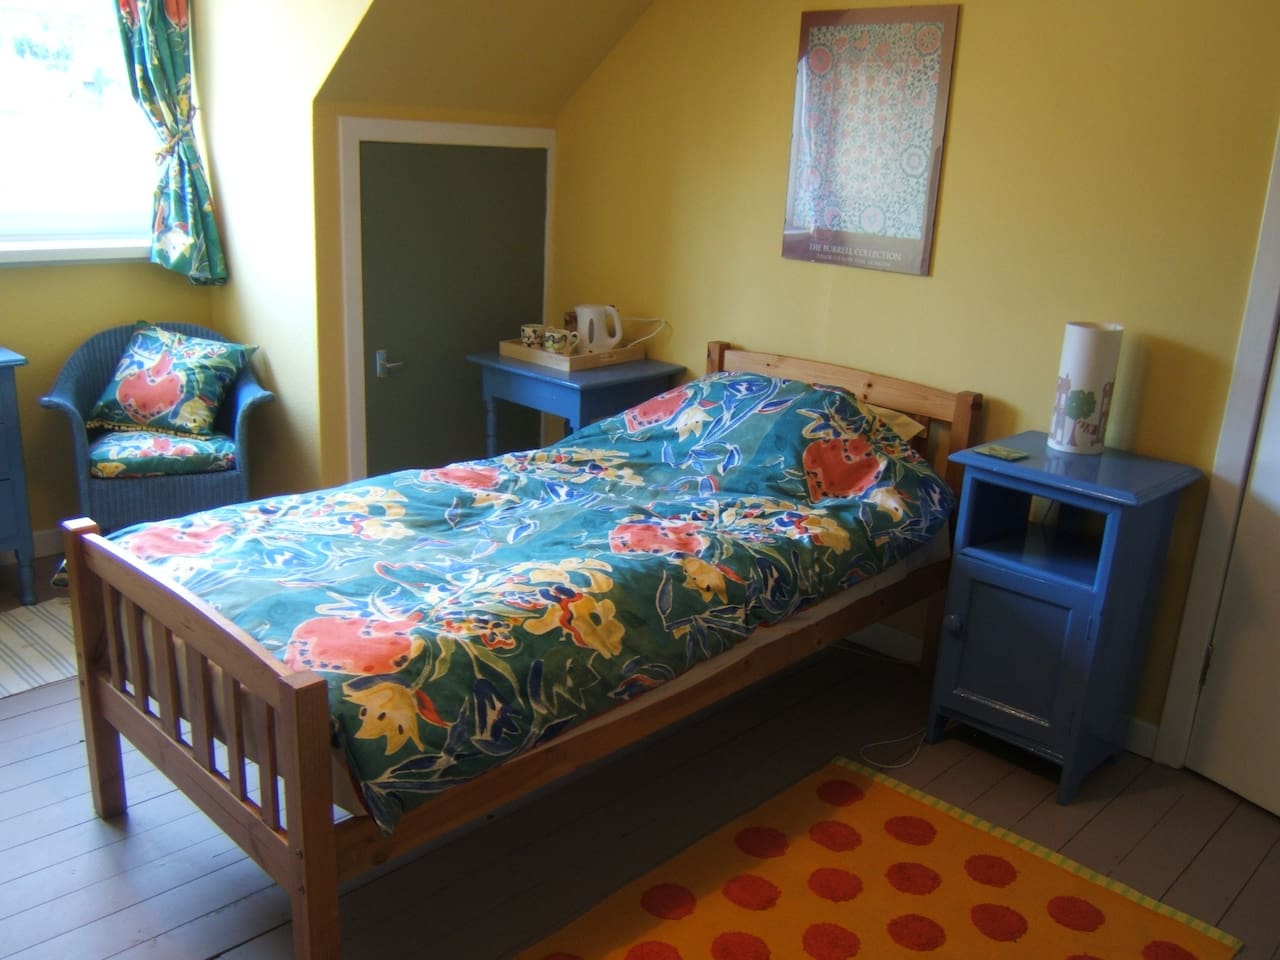 Both beds have memory foam mattress toppers making them extra comfy!